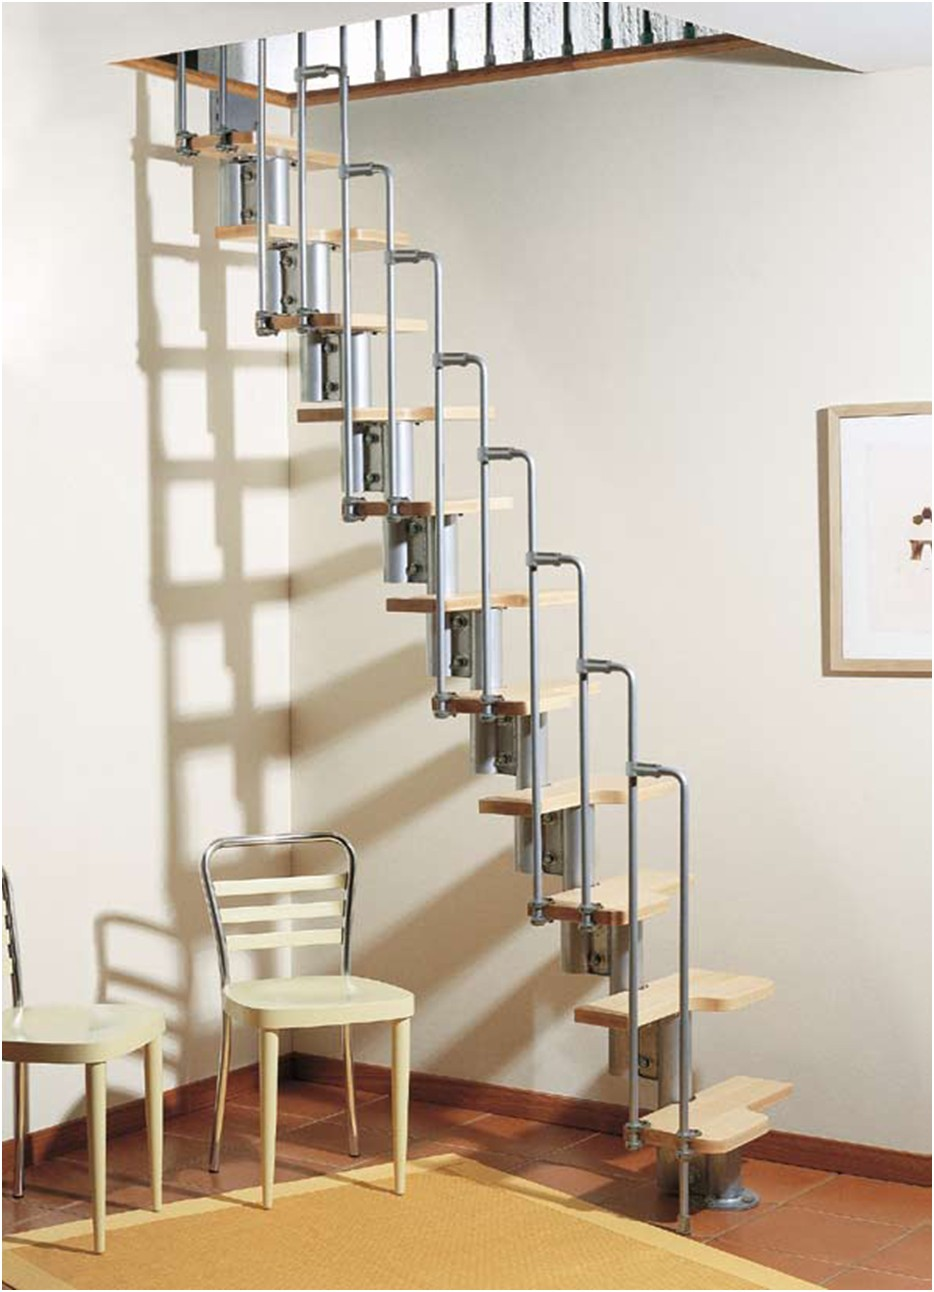 exterior metal staircase prices. karina modular staircase kit - metal, steel and wood spiral fontanot exterior metal prices